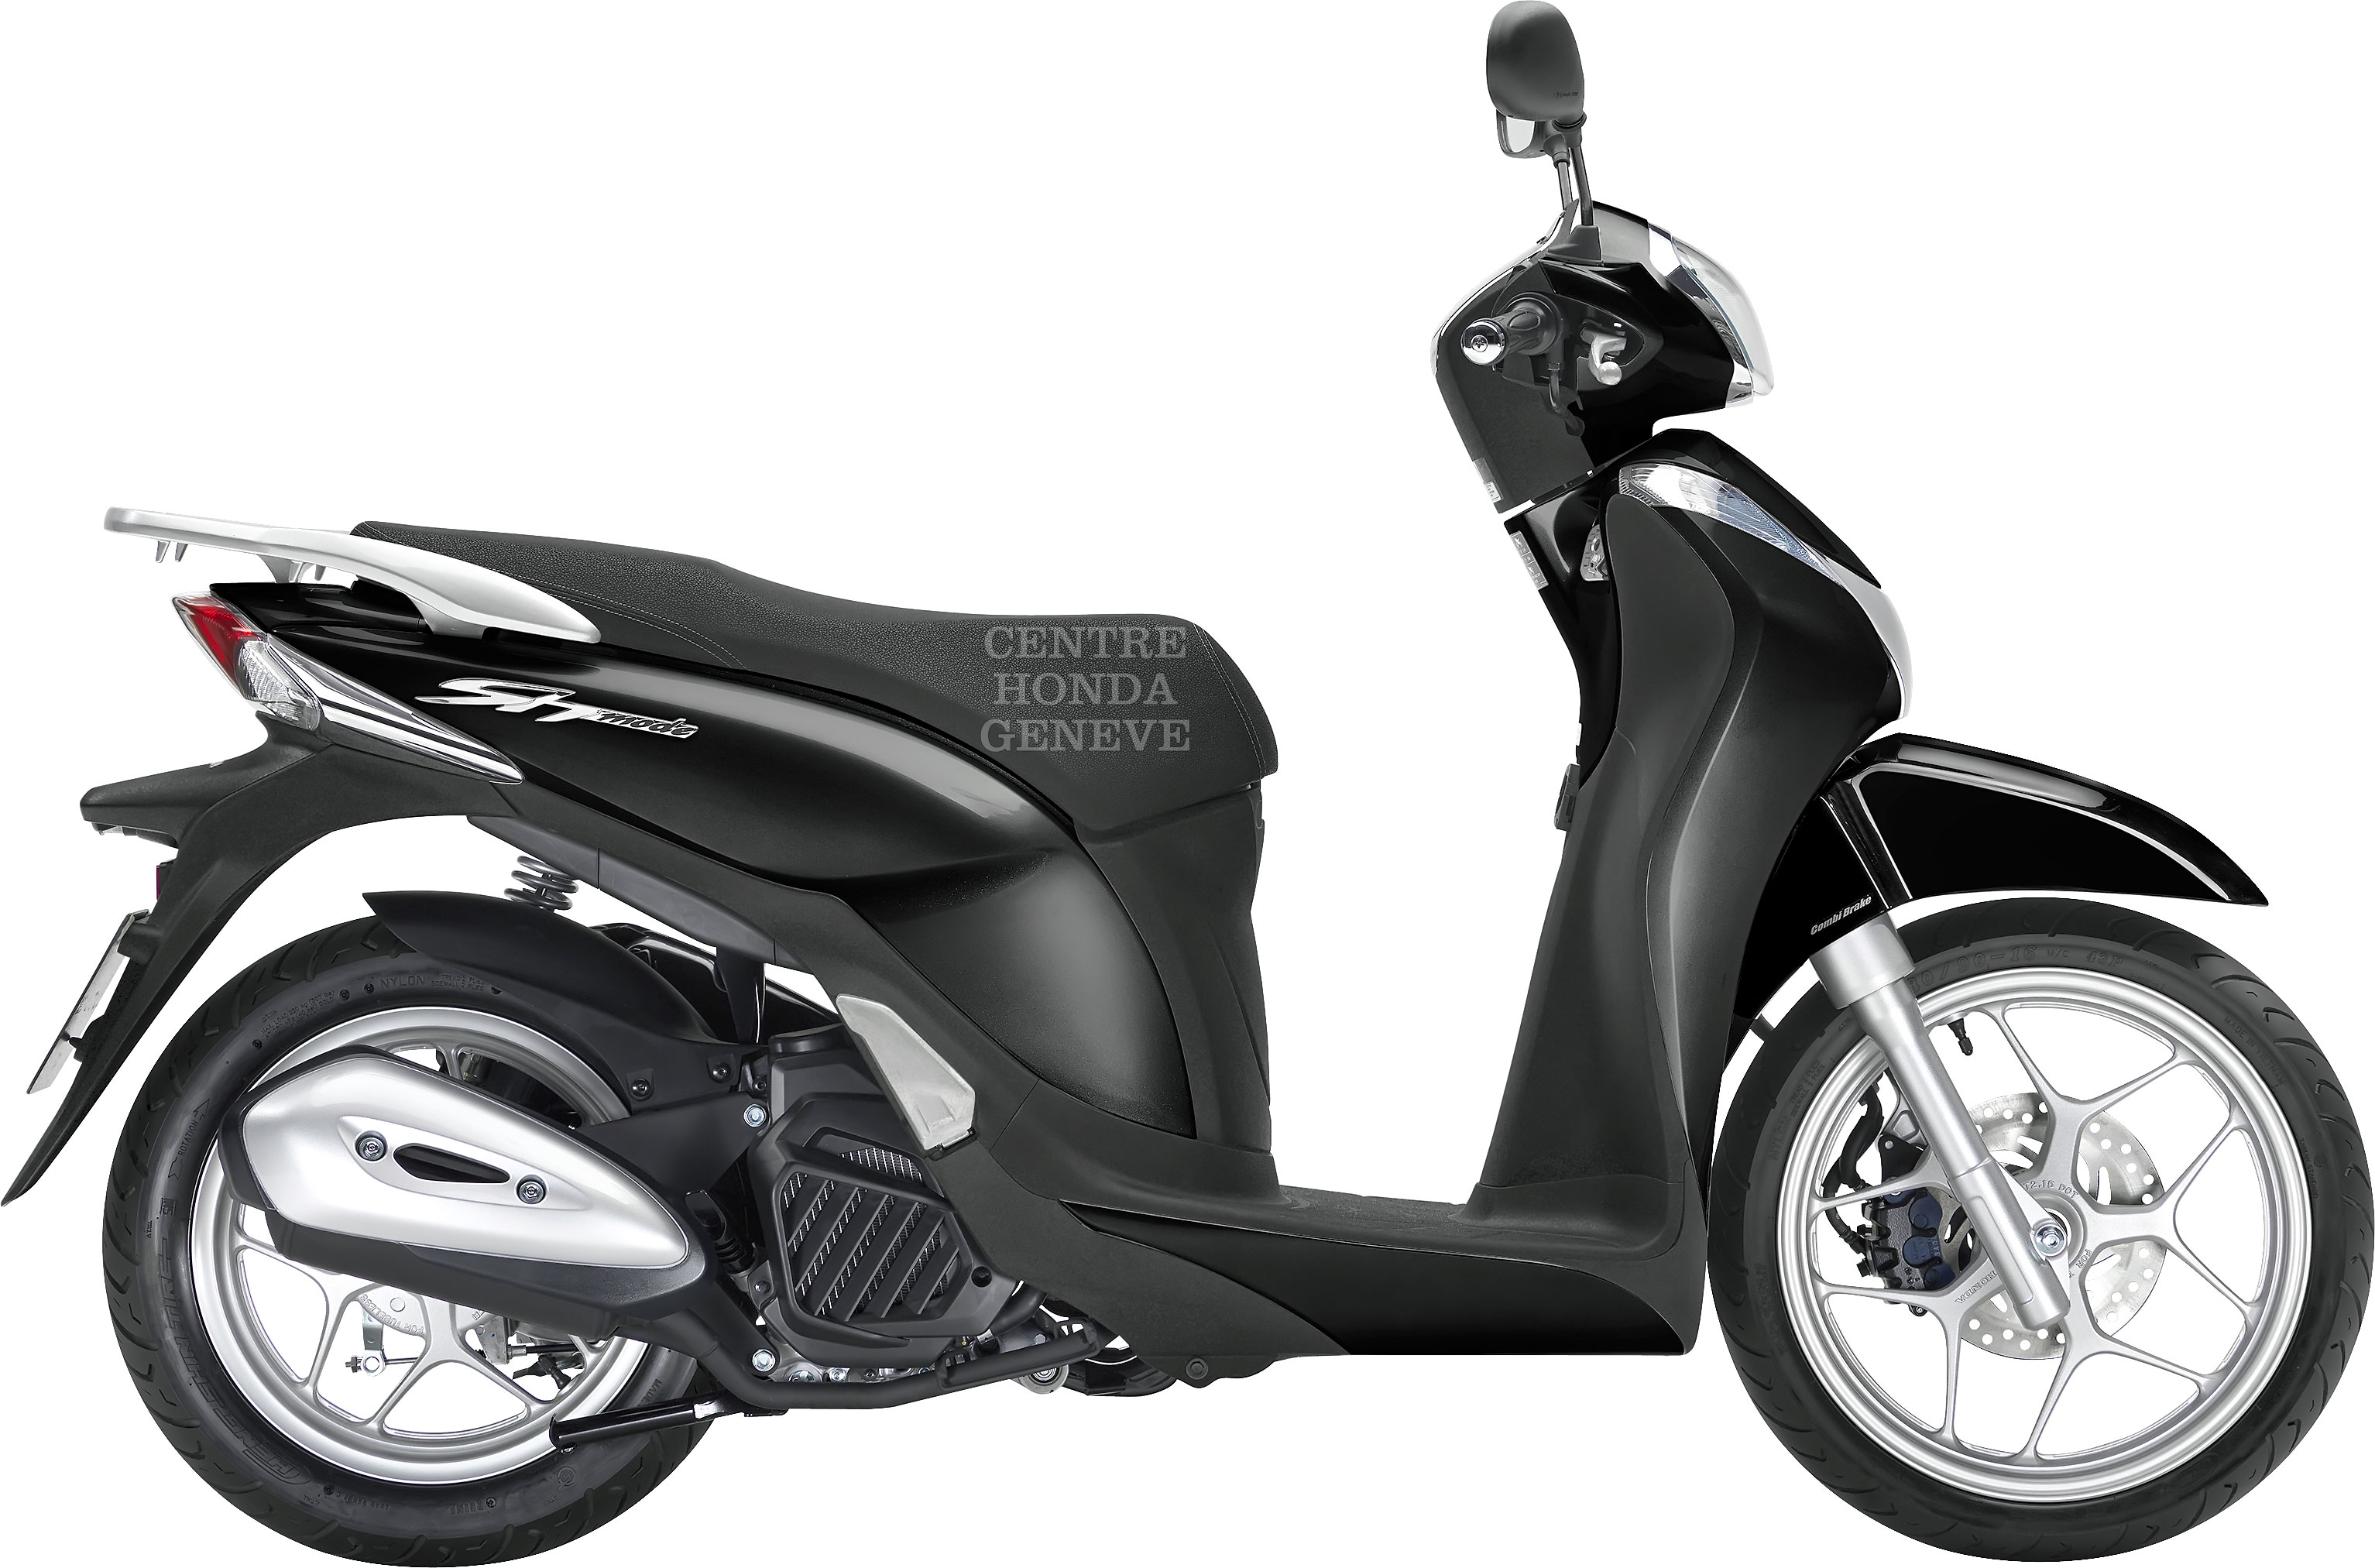 honda honda sh mode 125 moto zombdrive com. Black Bedroom Furniture Sets. Home Design Ideas